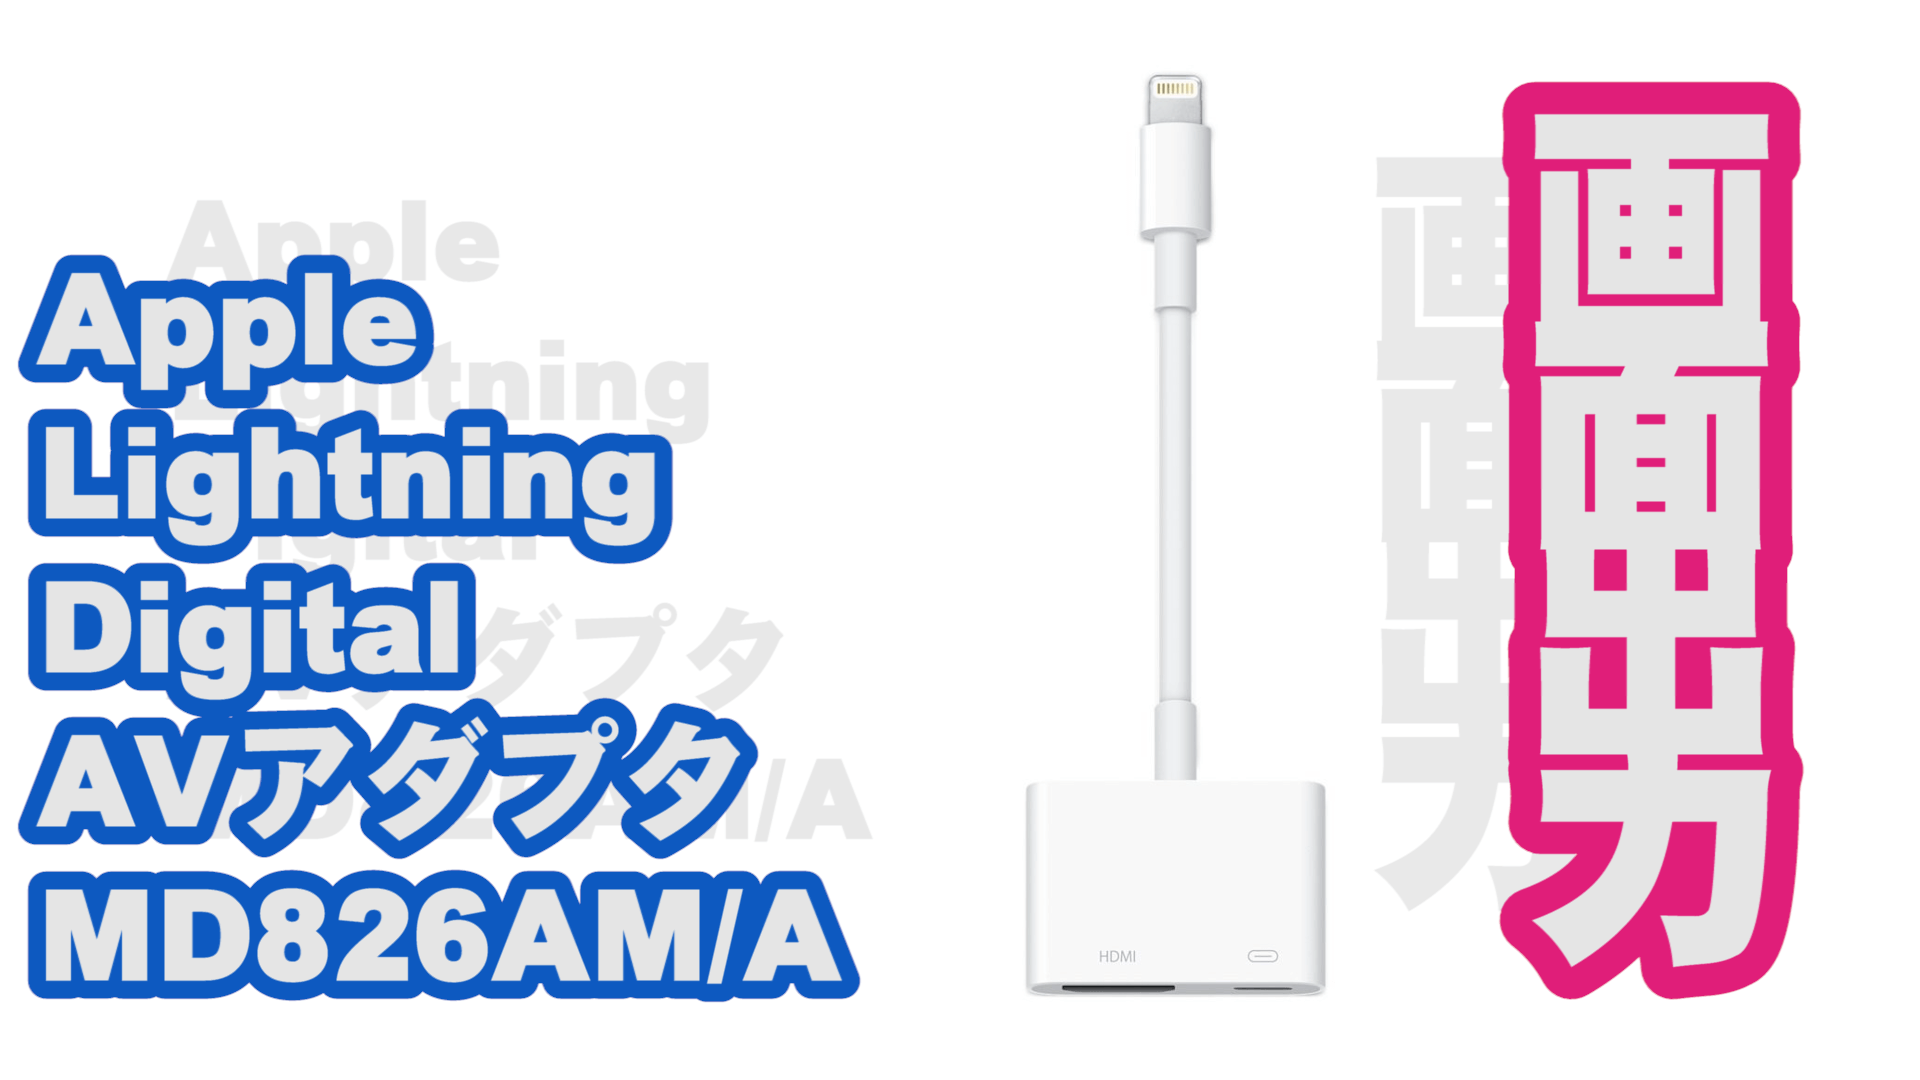 Apple Lightning - Digital AVアダプタ MD826AM/A アイキャッチ